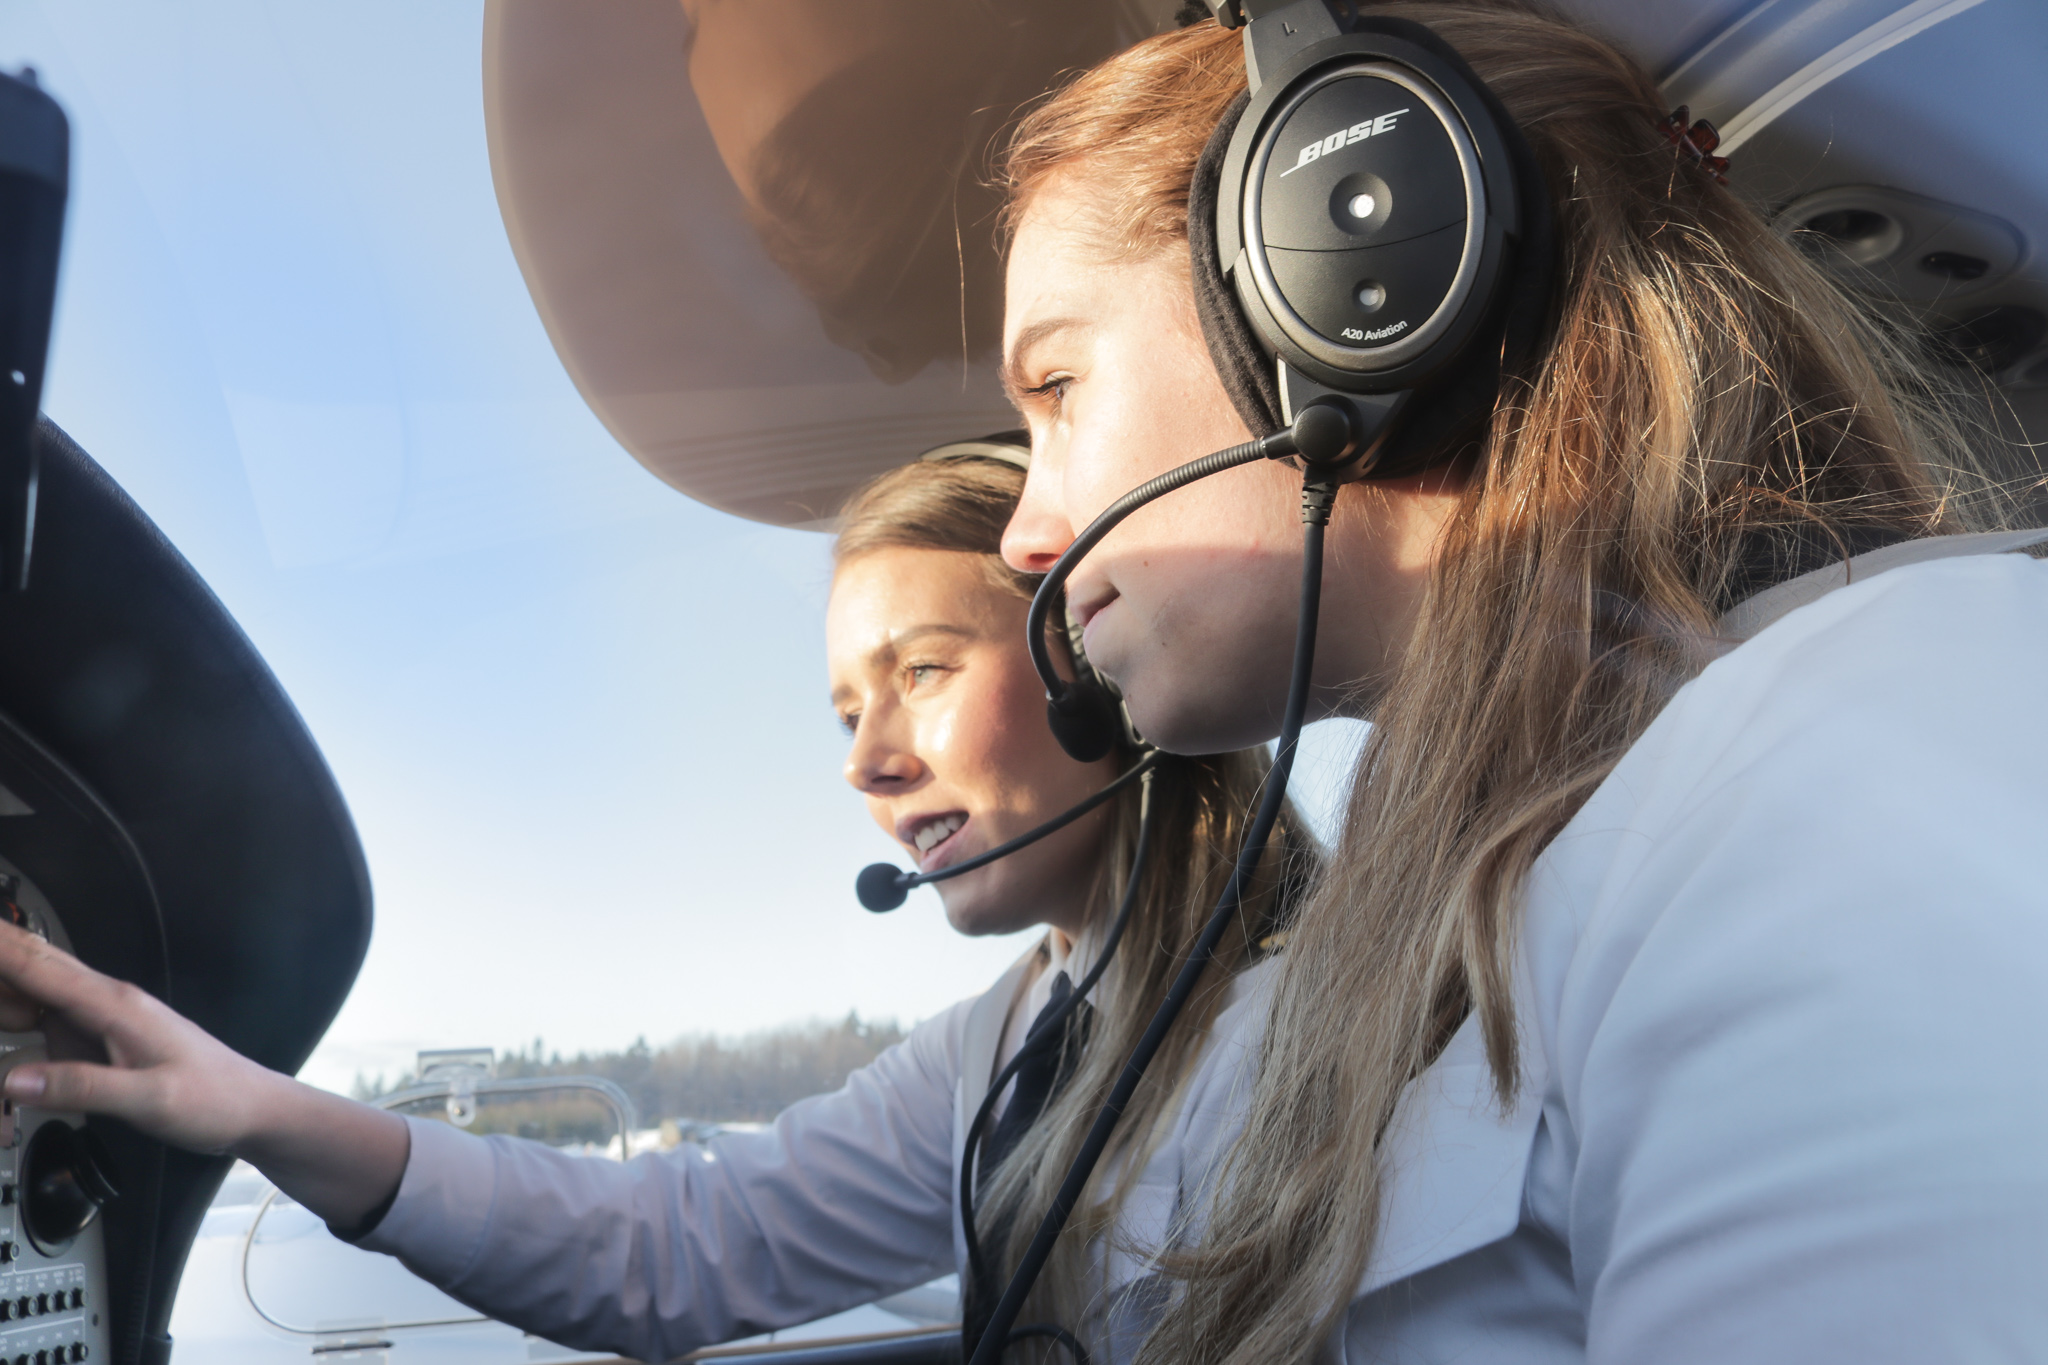 Pilot students during training